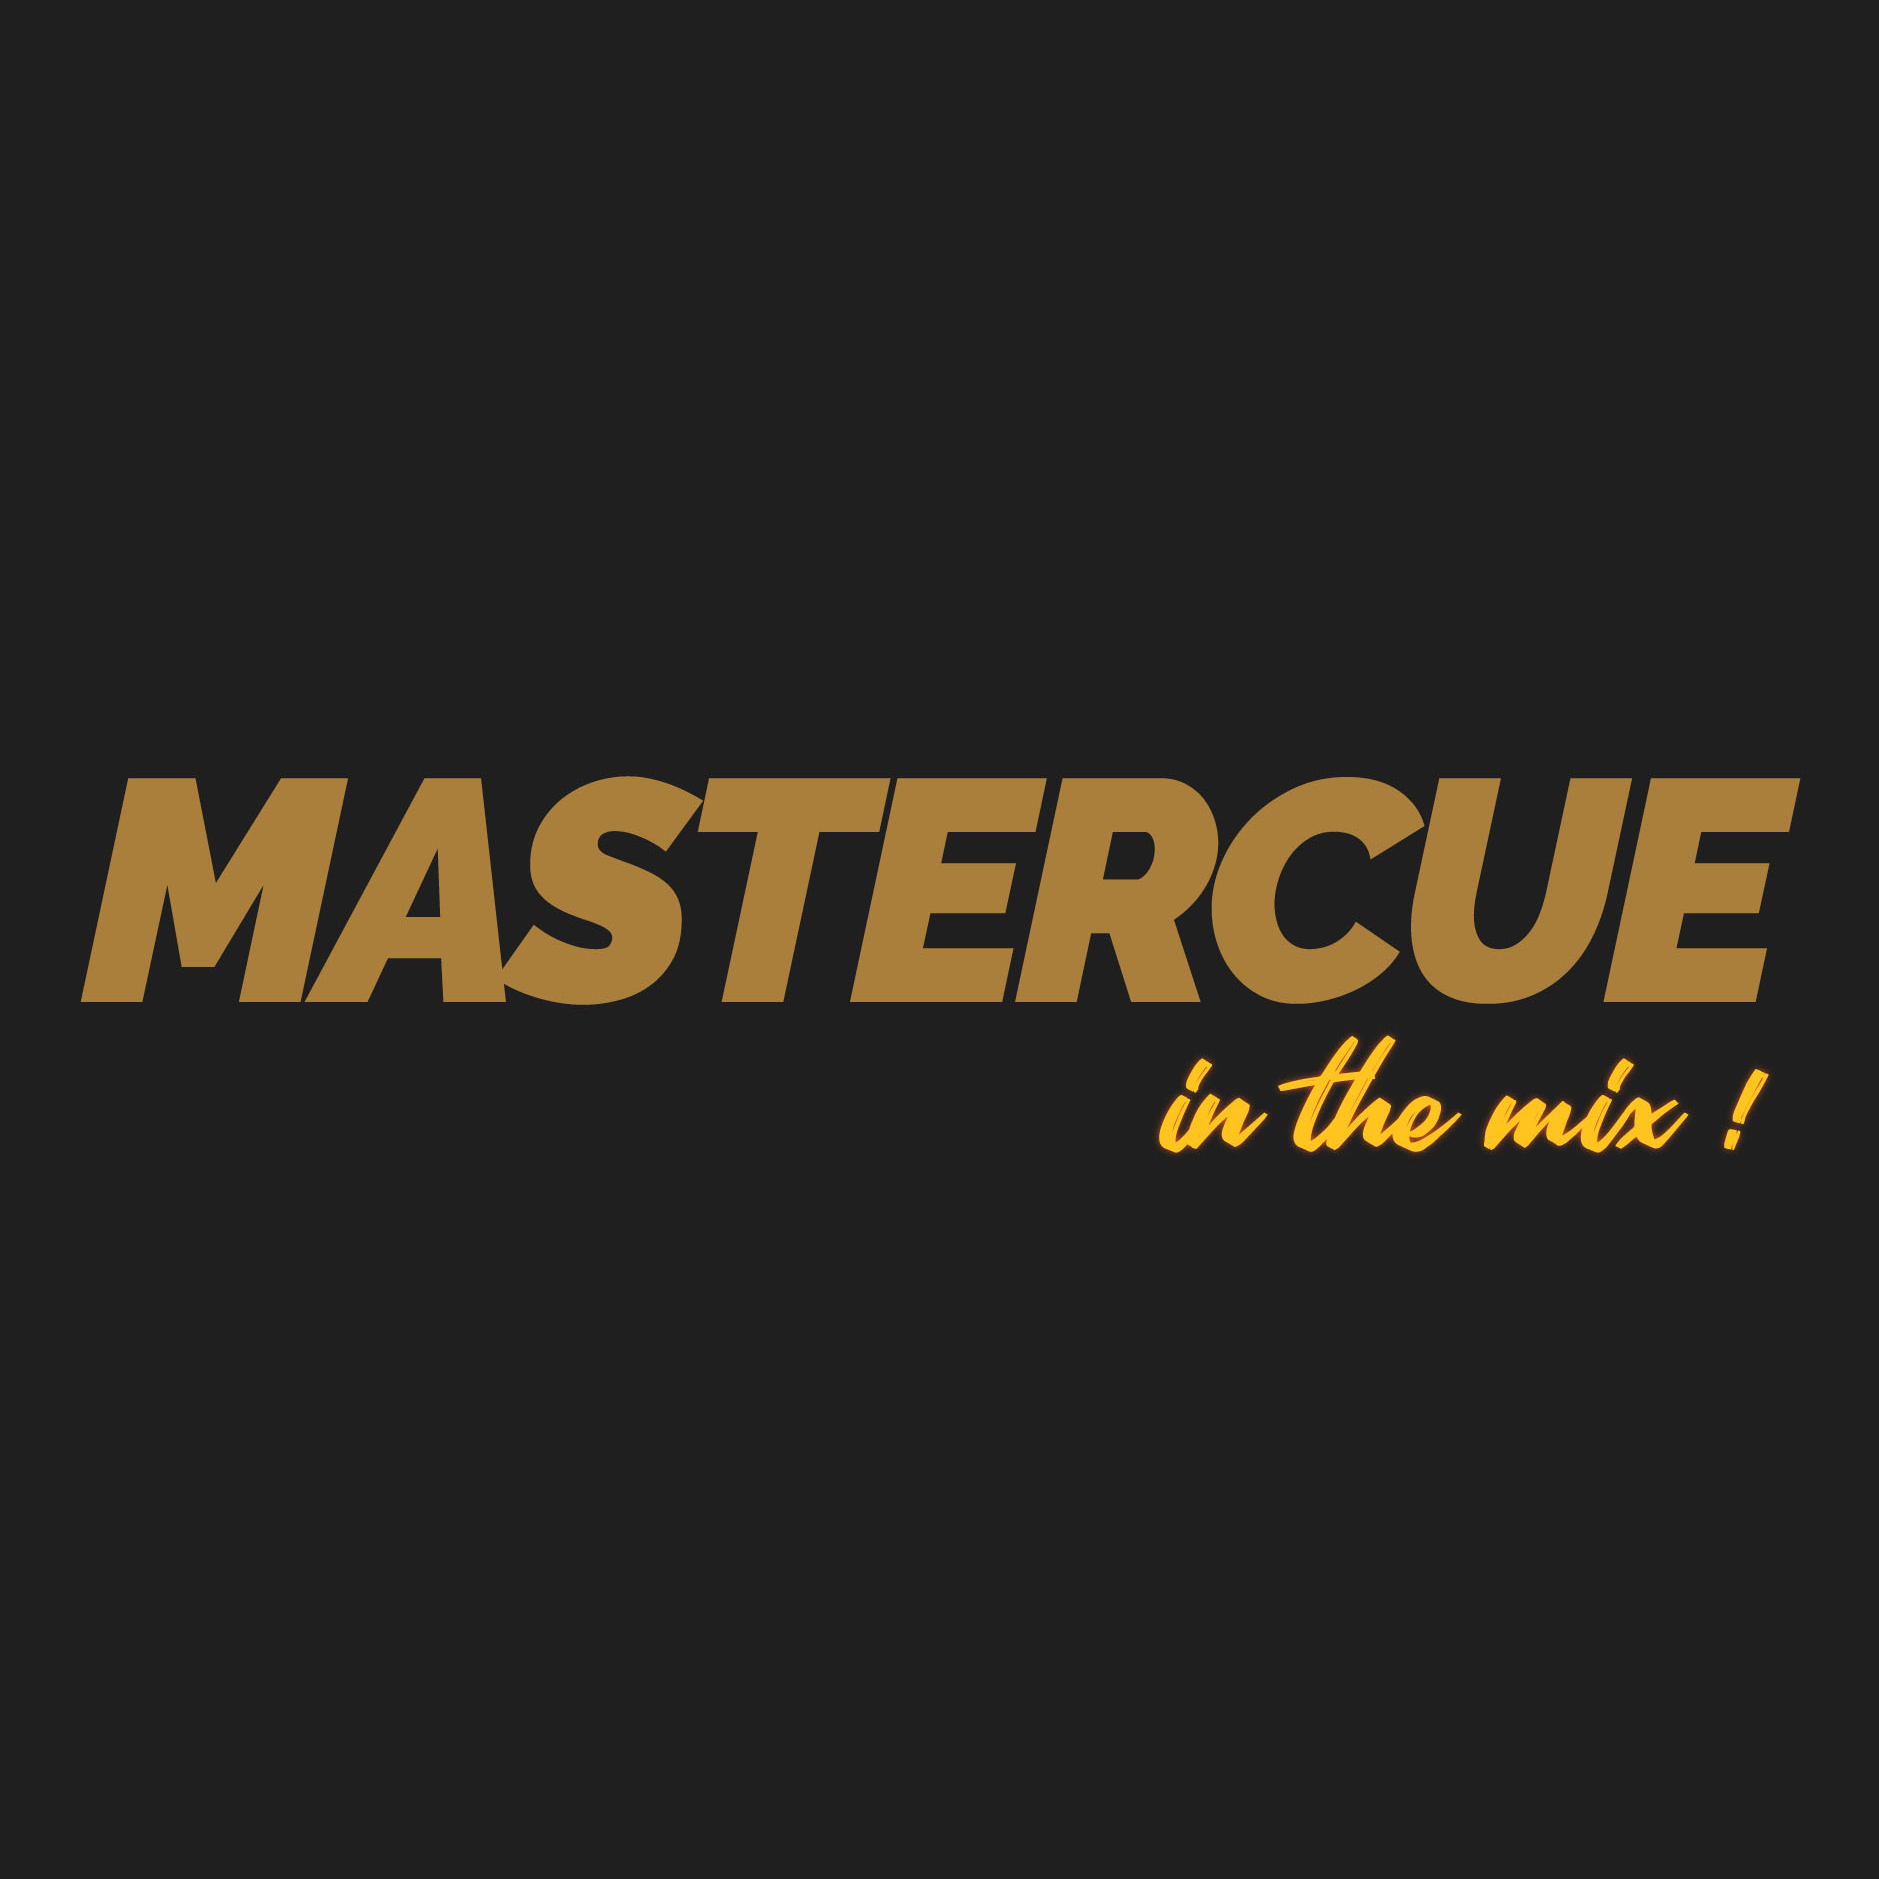 Mastercue in the mix